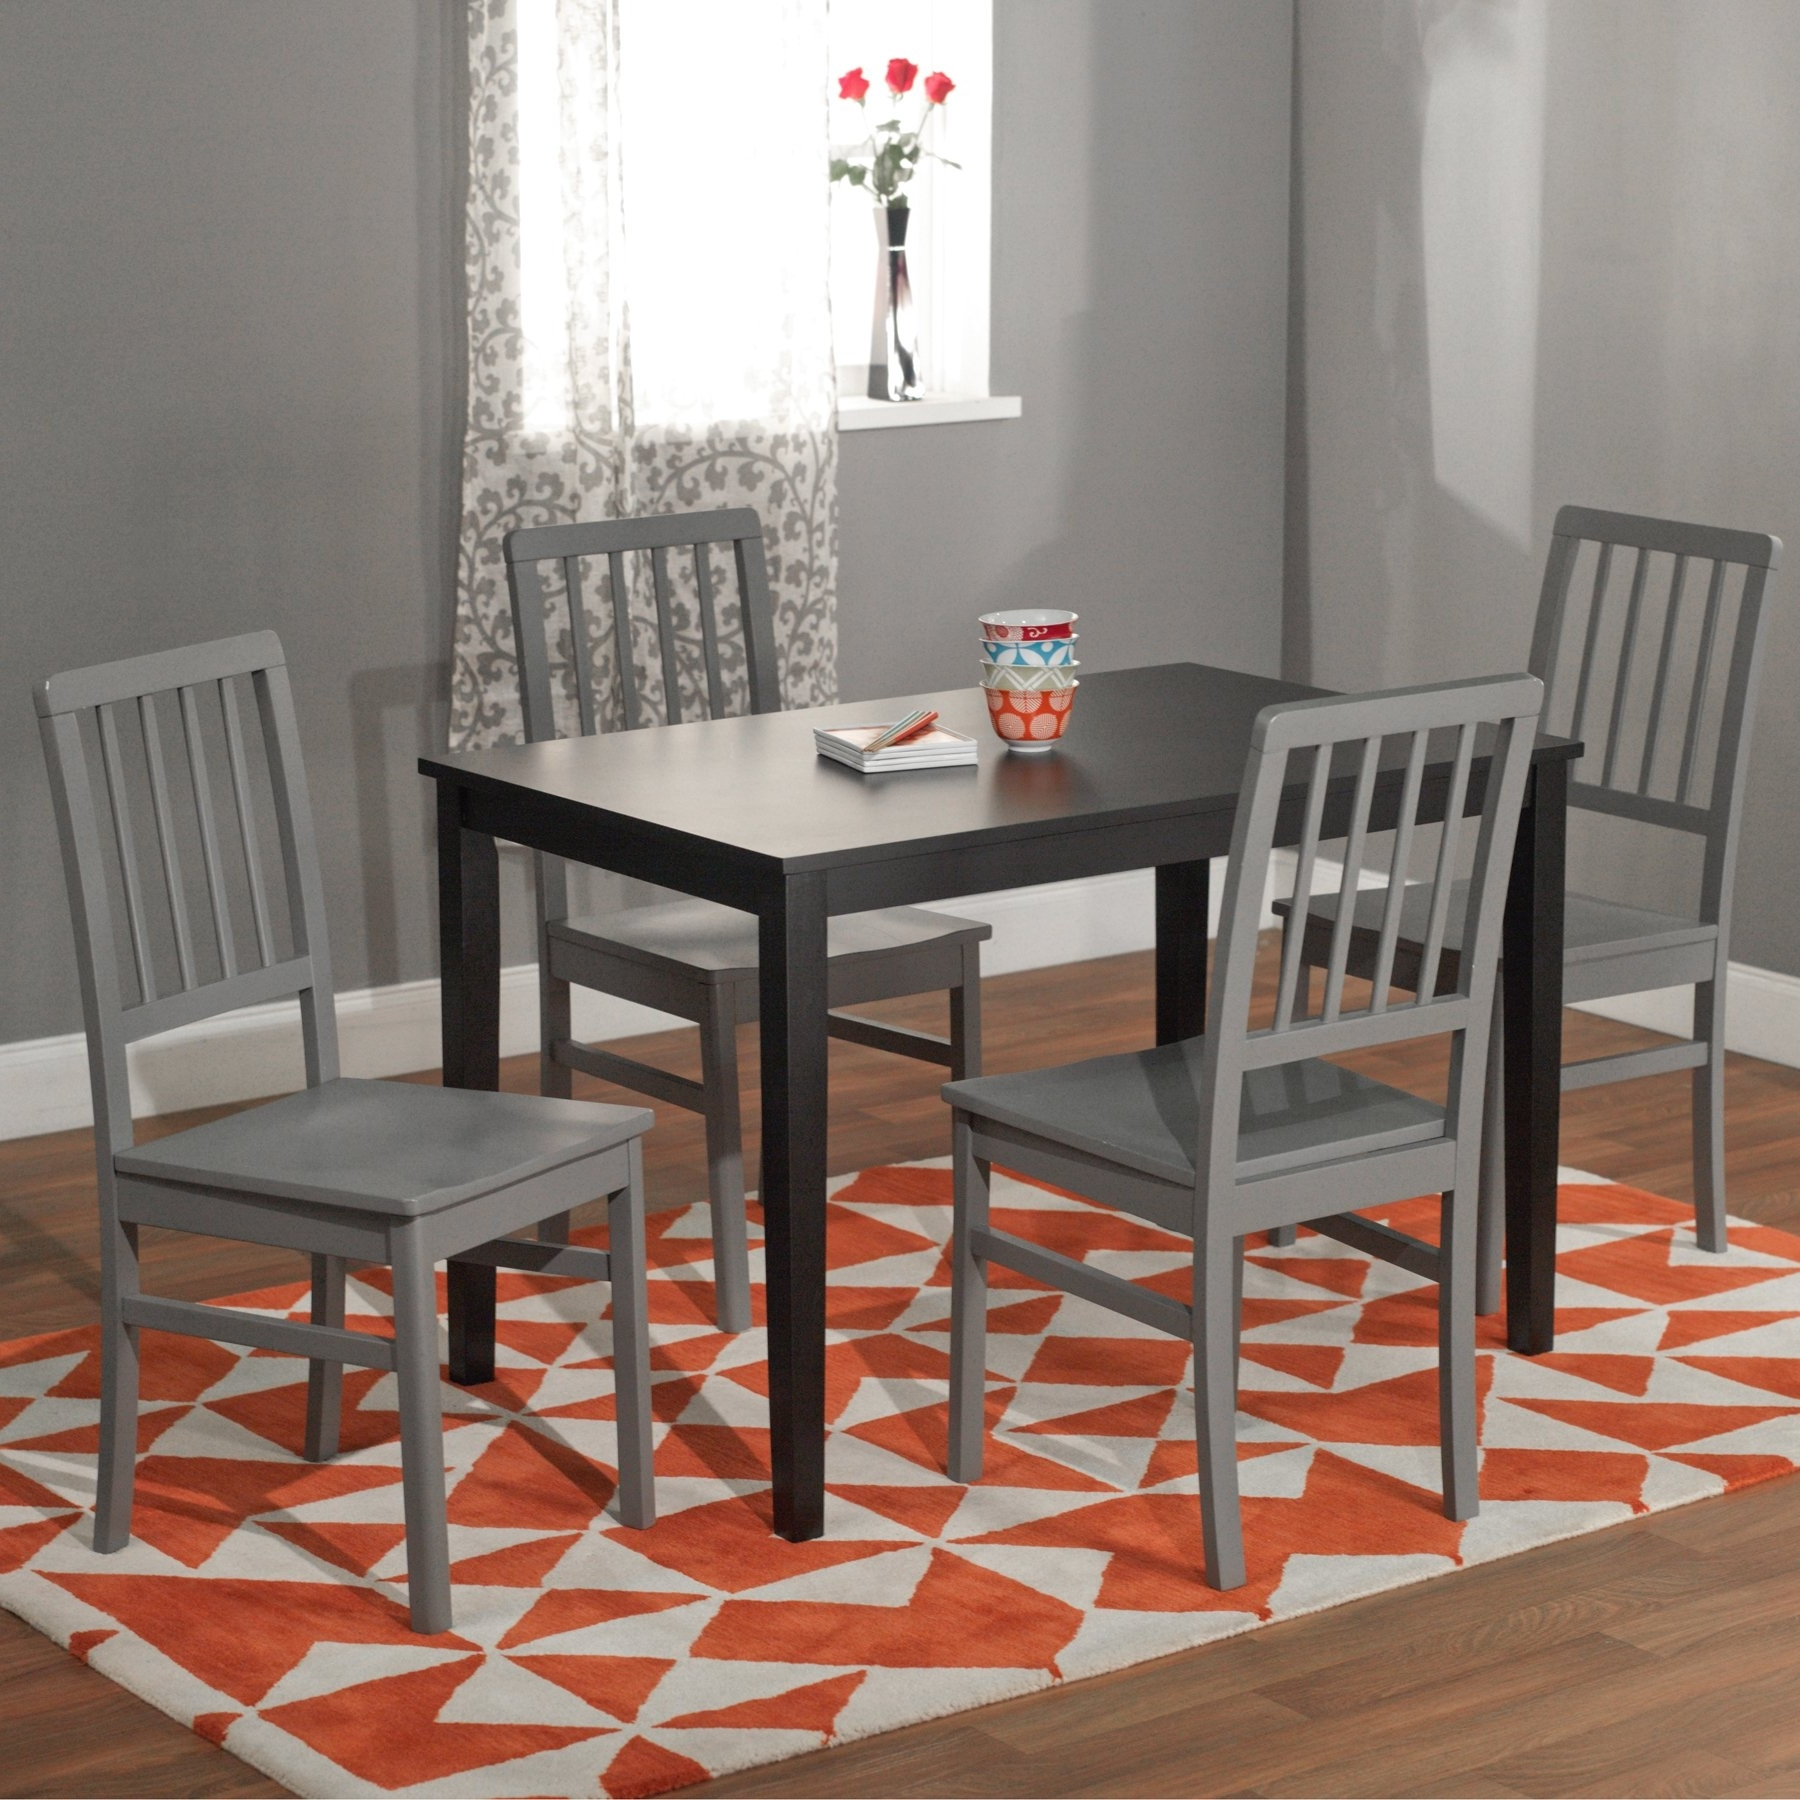 Most Recently Released Camden Dining Chairs In Shop Simple Living Camden Dining Chair (Set Of 4) – Free Shipping (View 14 of 20)